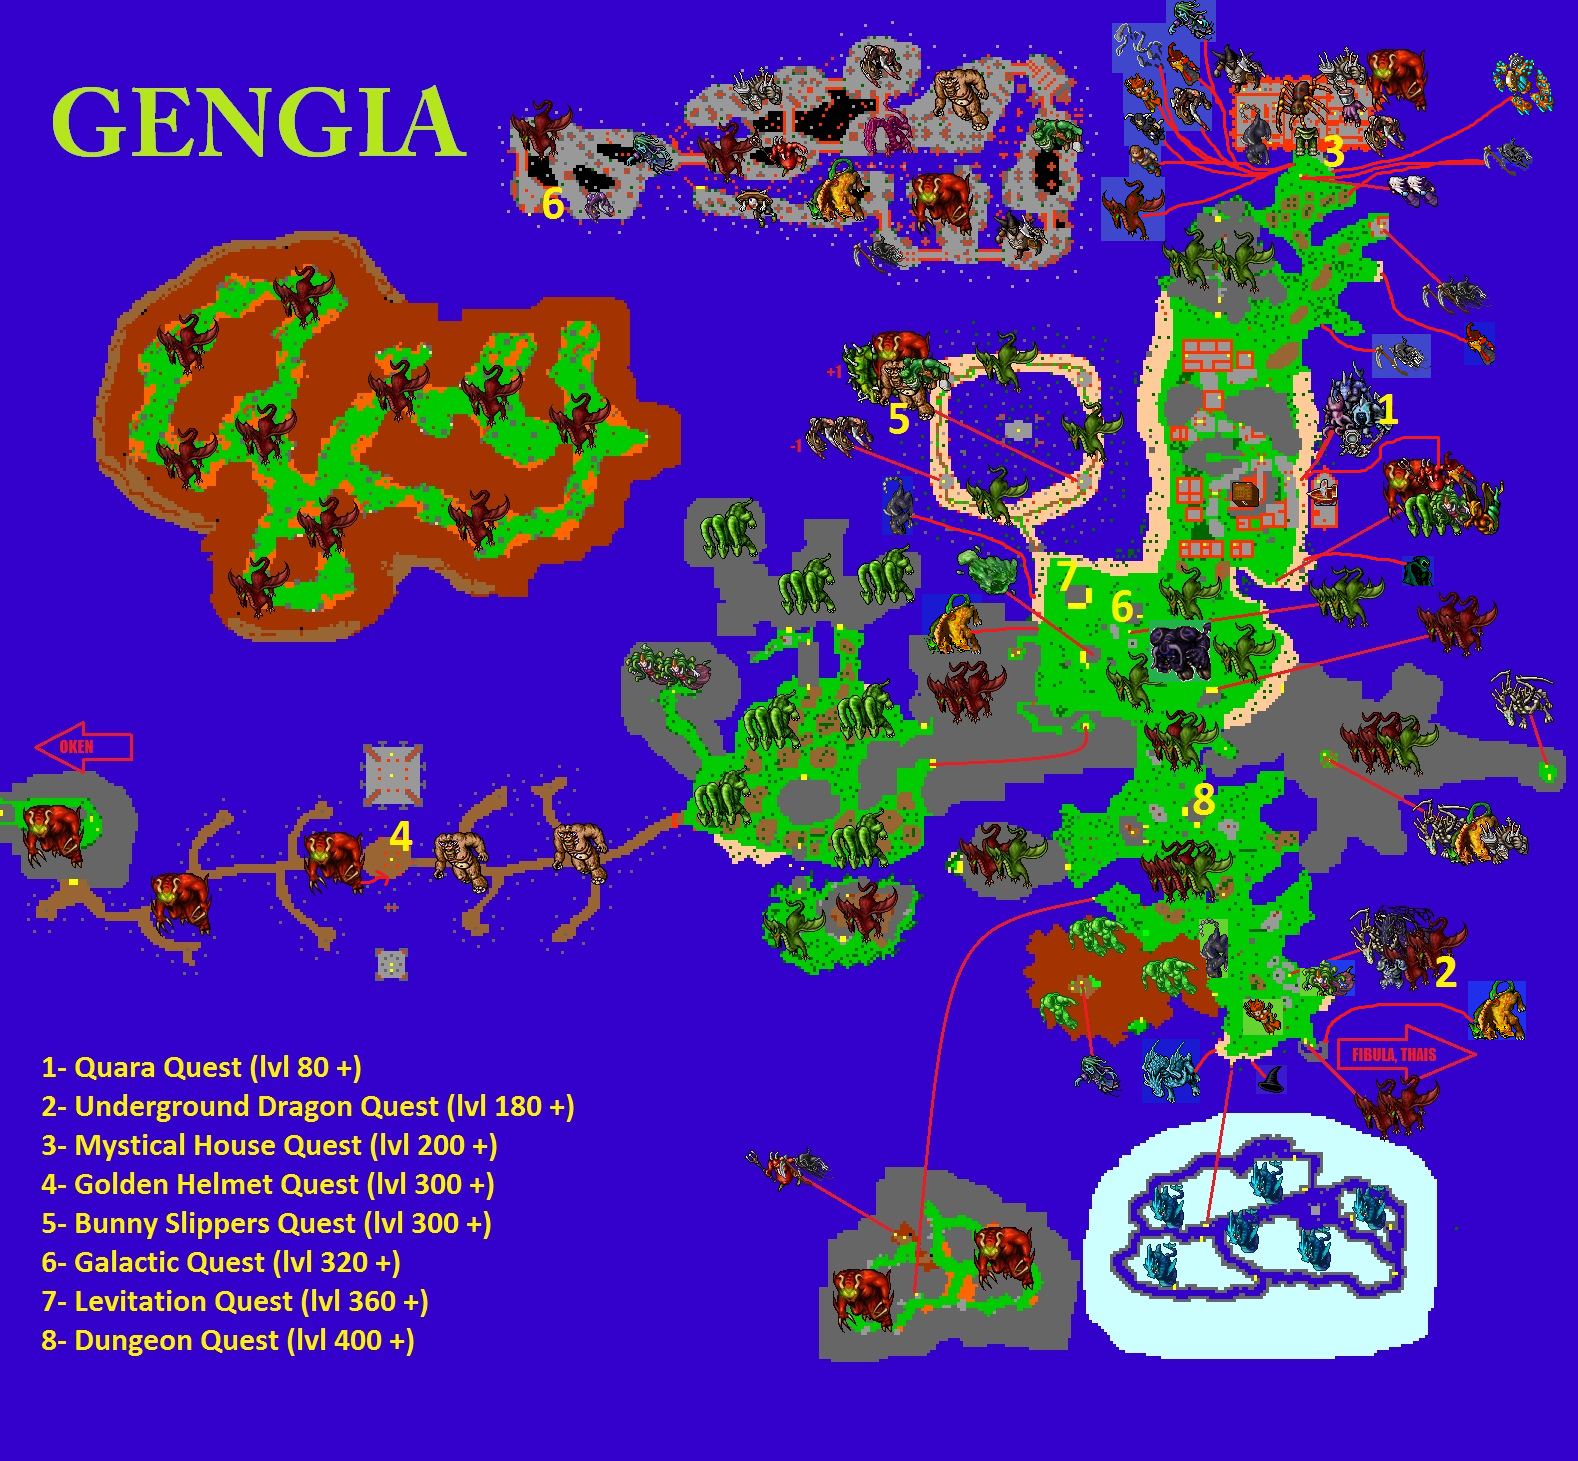 http://openka.net/images/maps/gengia.png